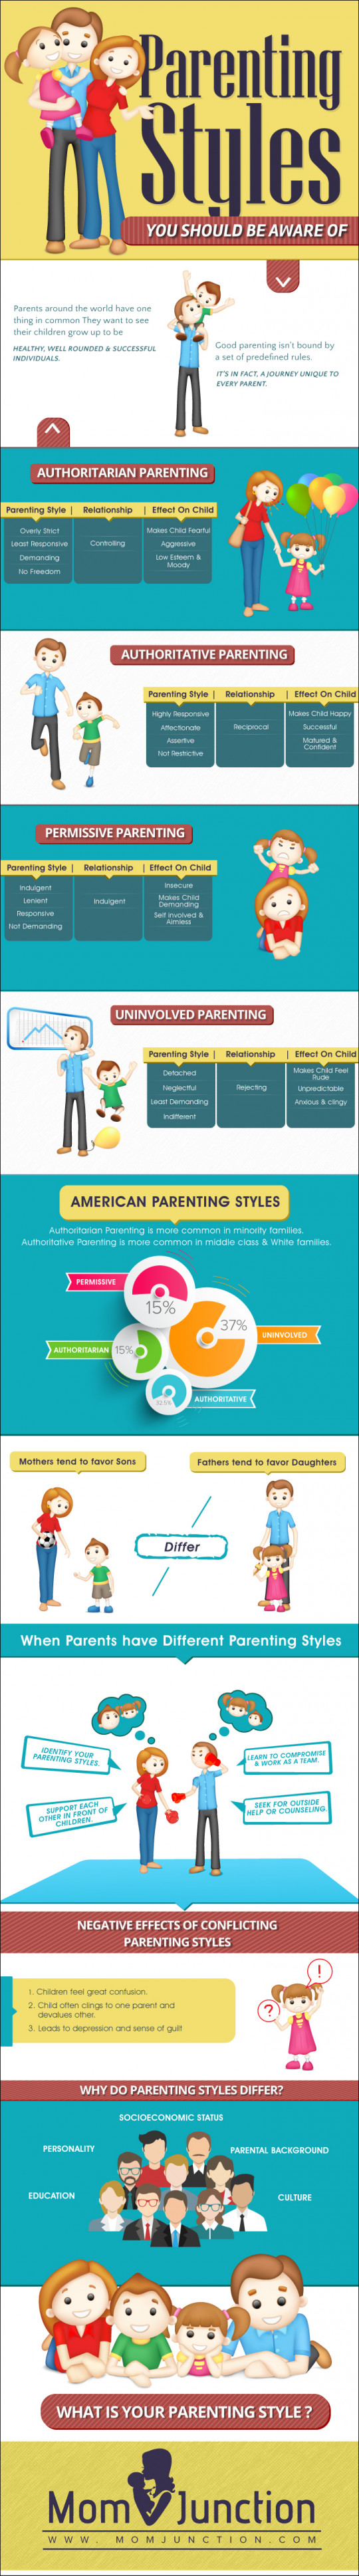 Different Types of Parenting Styles you Need to be Aware of